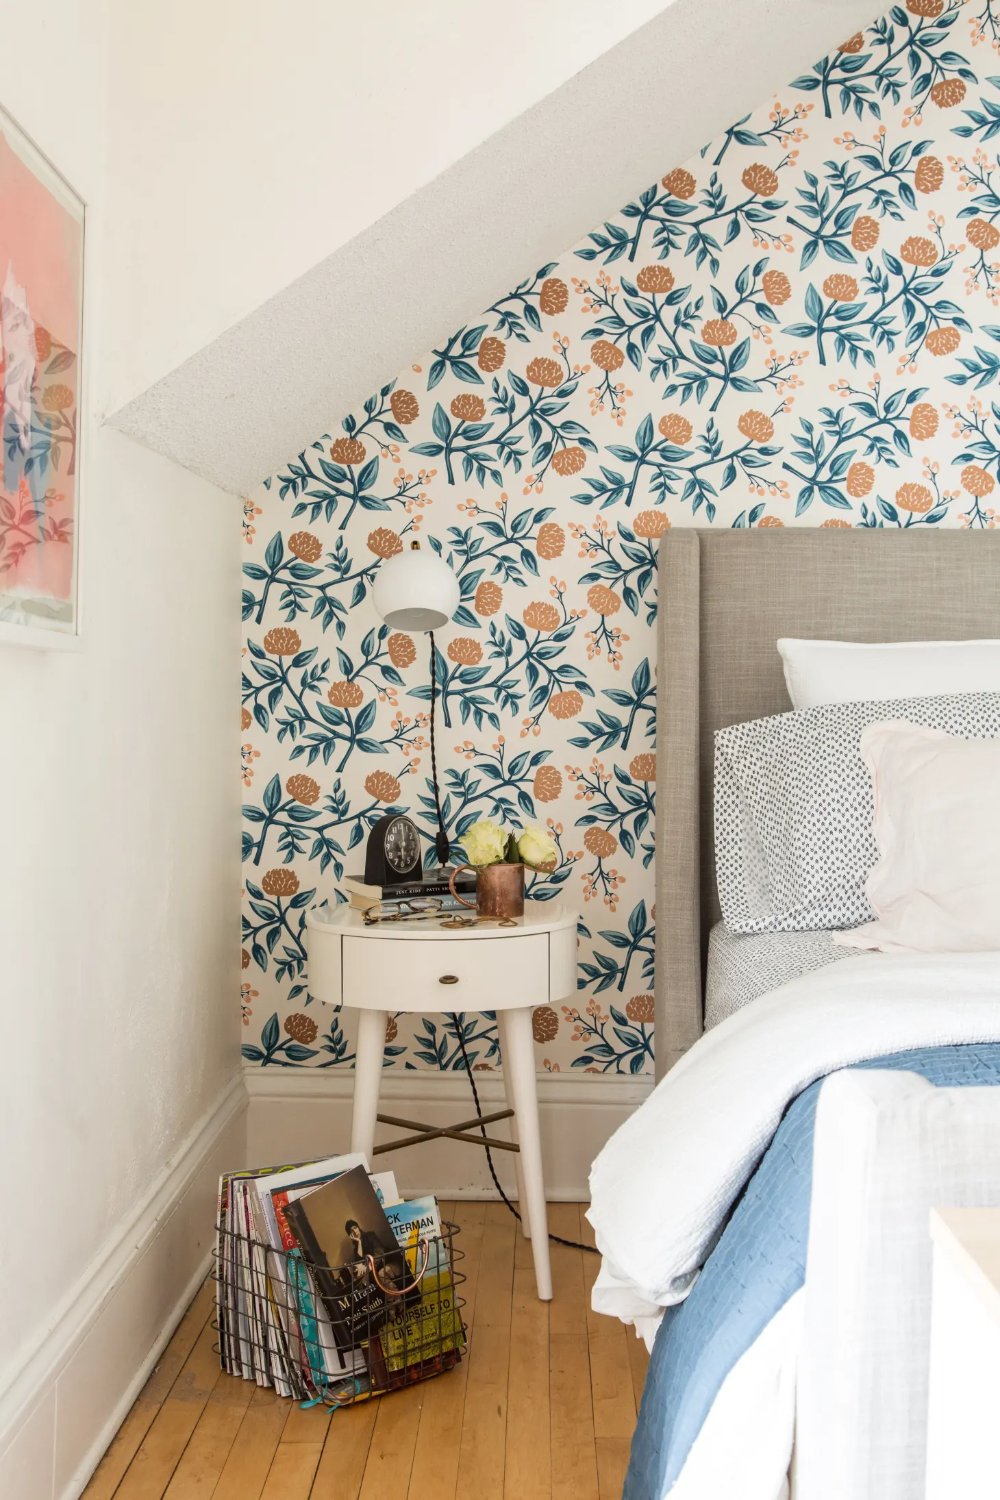 Wallpaper Design Ideas for Any Room Apartment Therapy in